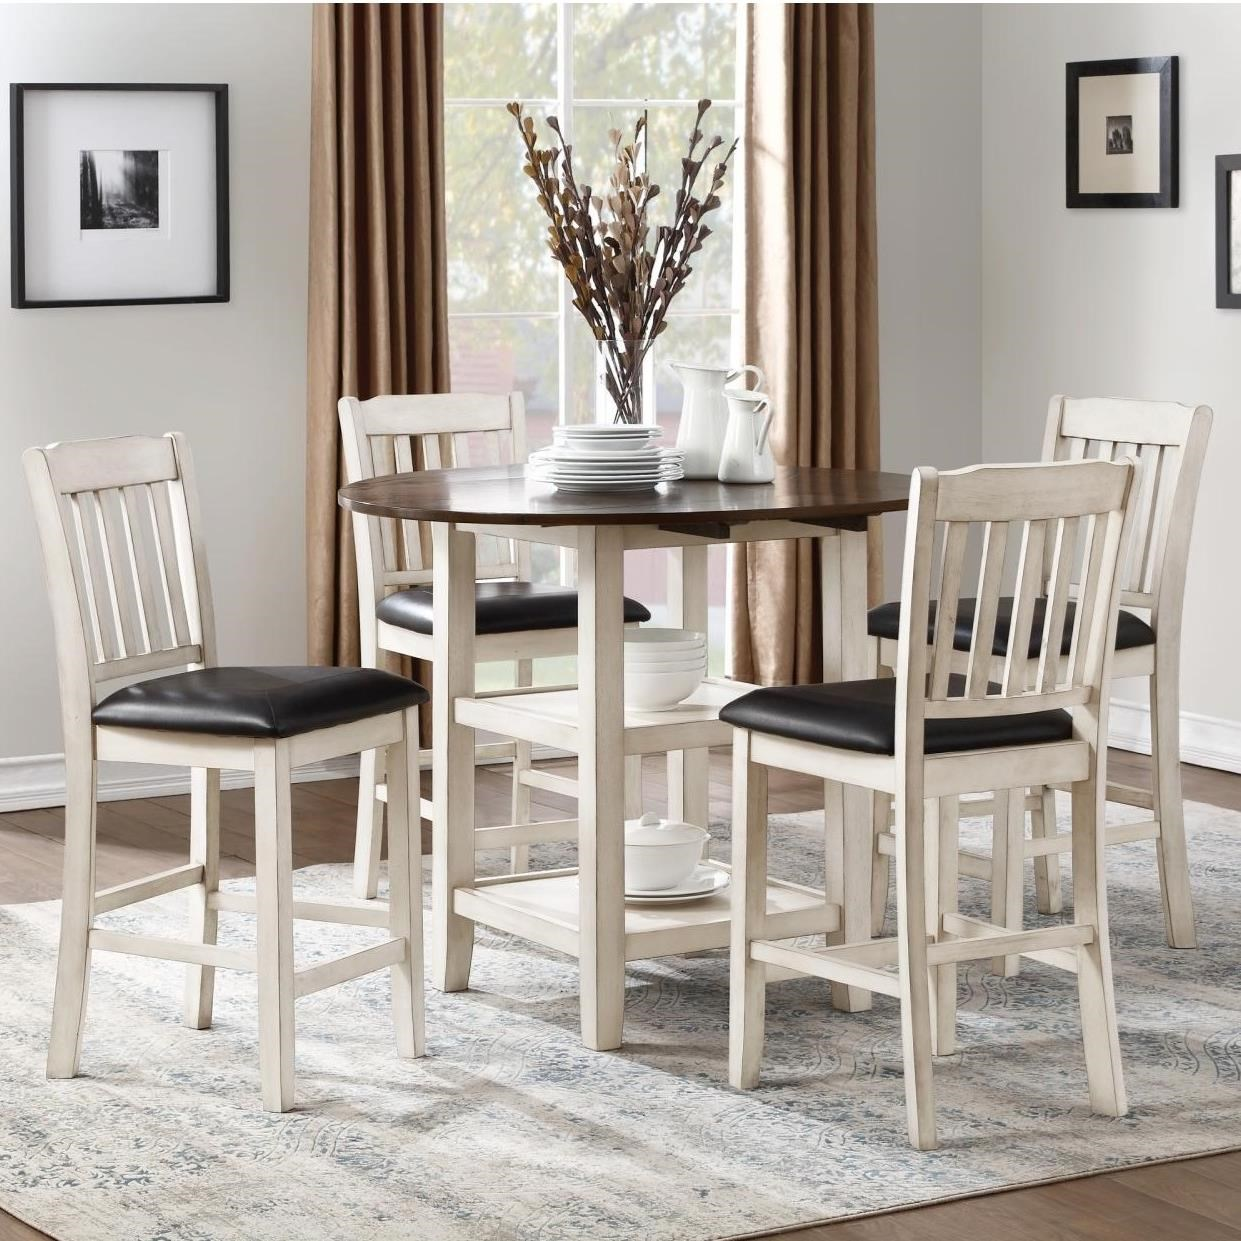 Kiwi Five Piece Chair & Pub Table Set by Homelegance at Beck's Furniture